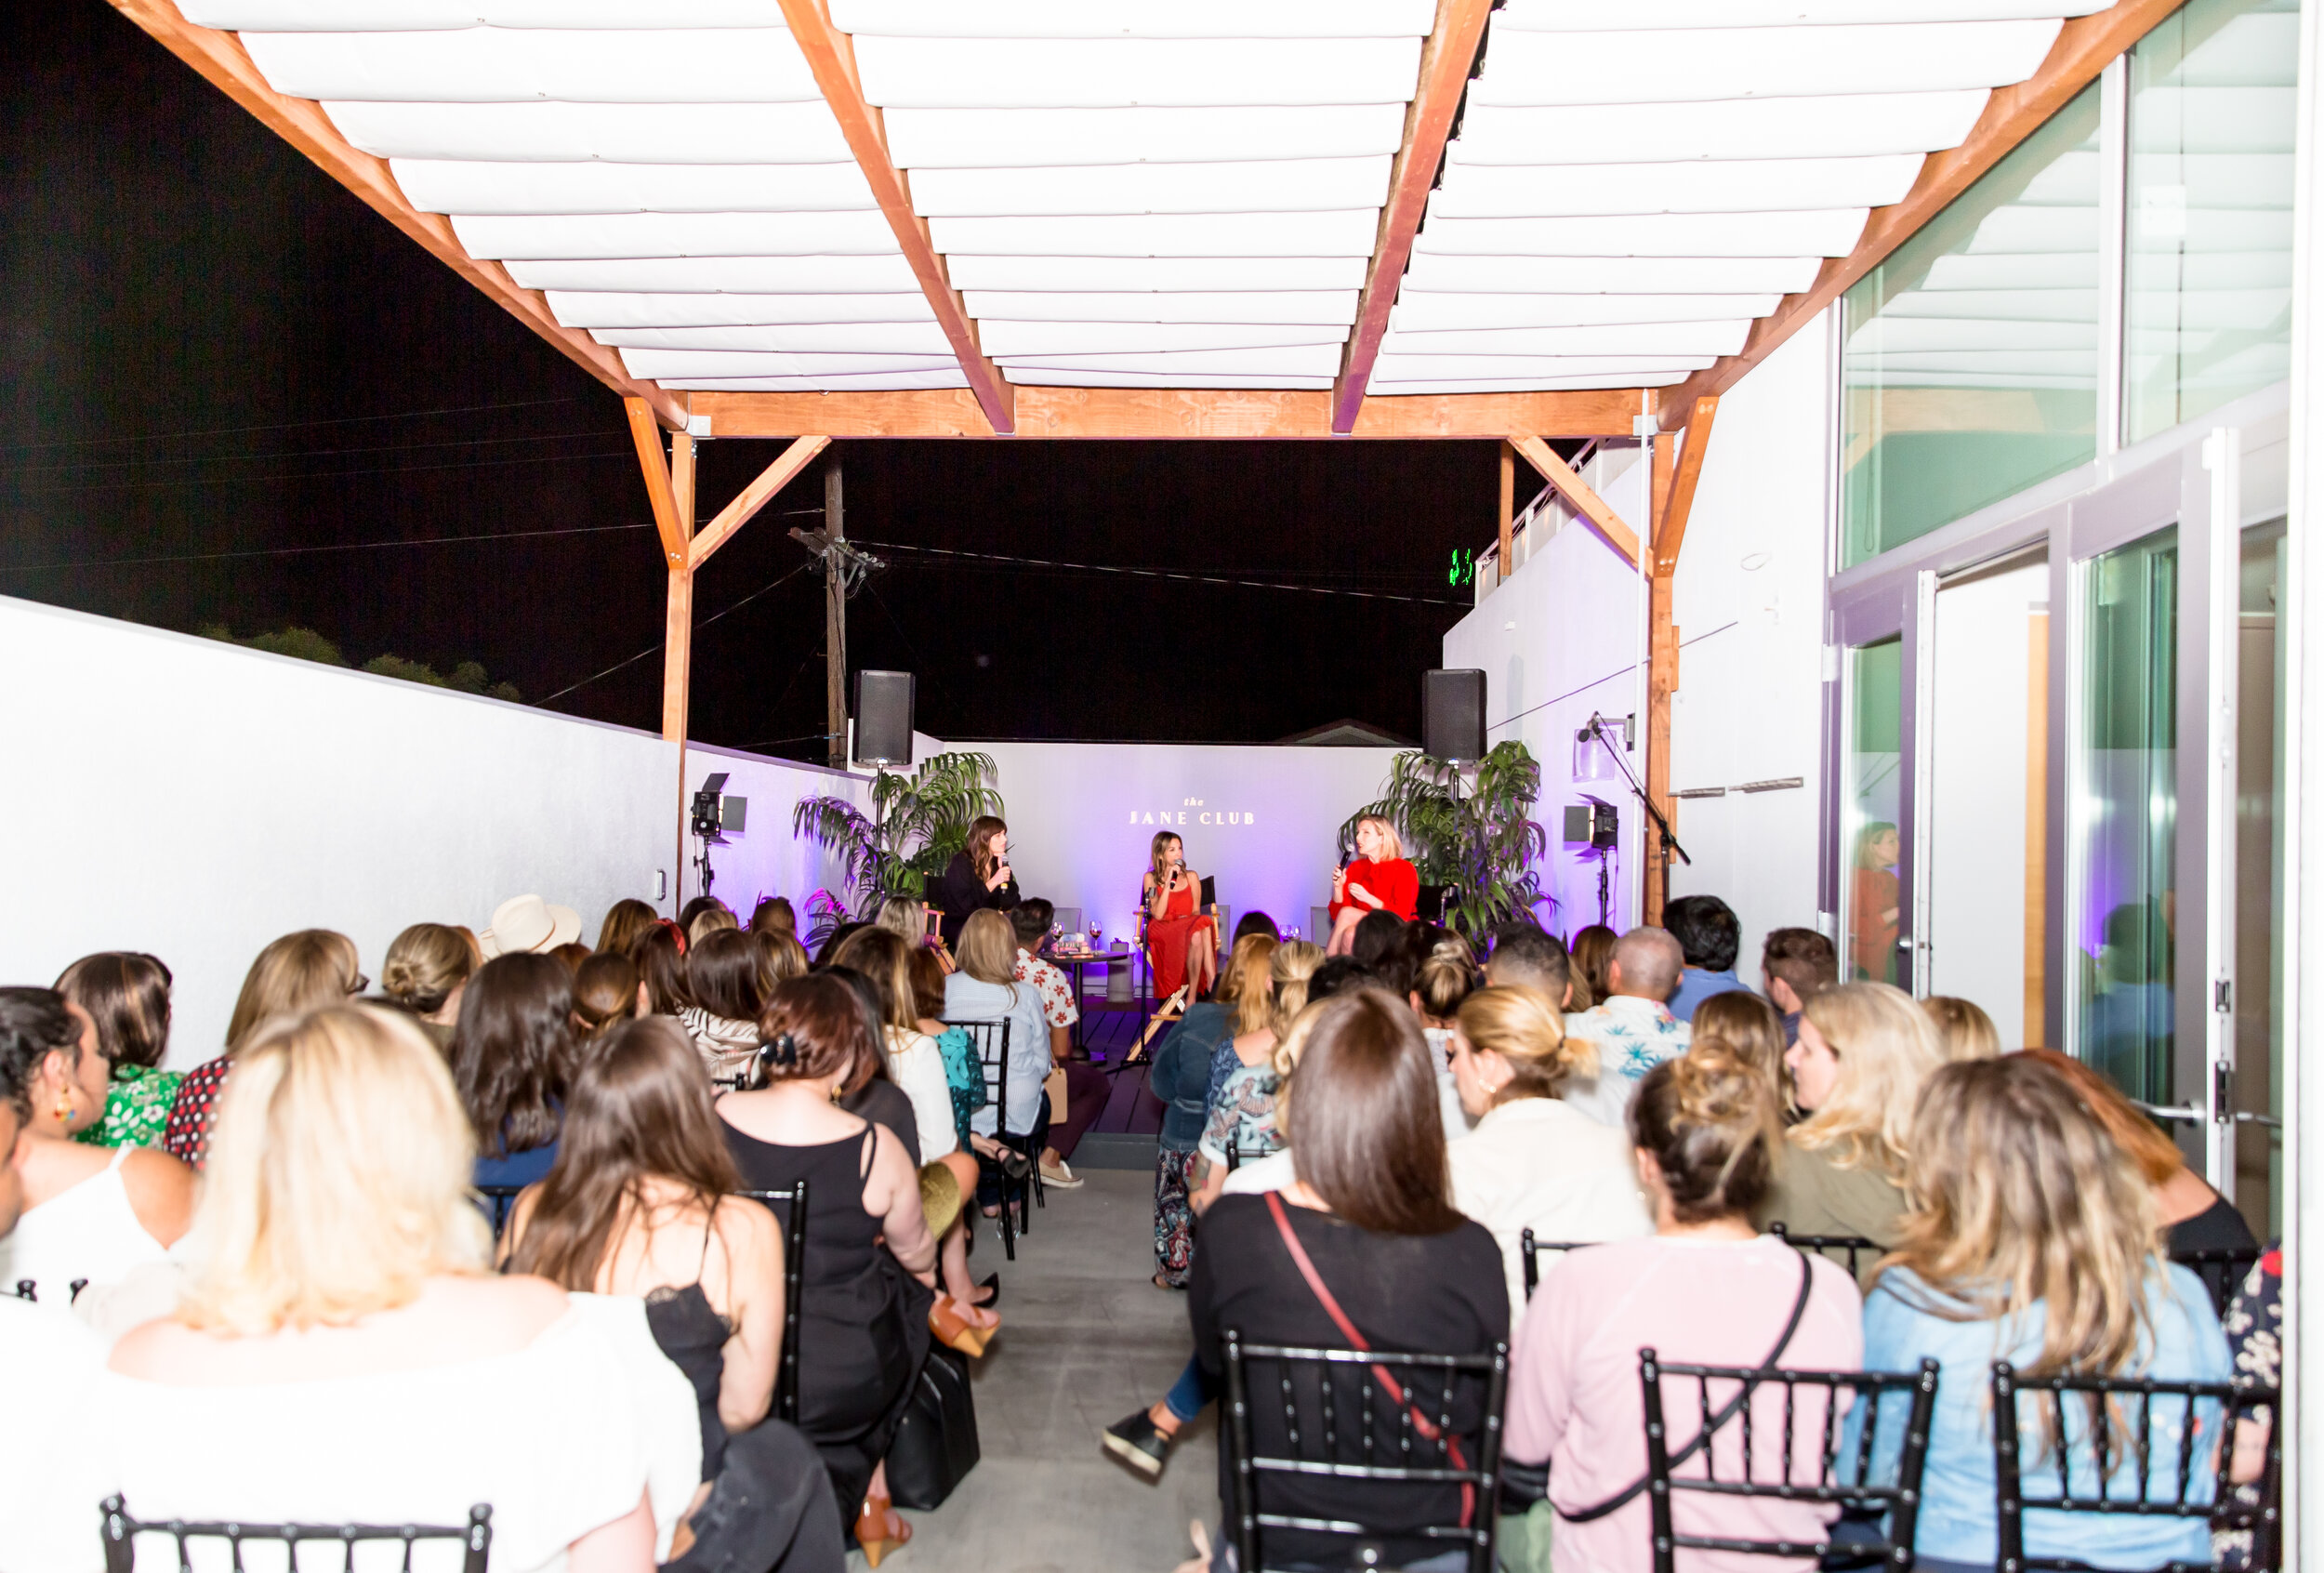 Panel discussions and Fireside Chats - Gather a group for insightful fireside chats, thoughtful panel discussions or one-on-one interviews Poolside at The Jane Club.Events can accommodate up to 75 seated attendees.Pictured here: live podcast recording of Bitch Sesh featuring Casey Wilson and Danielle Schneider.